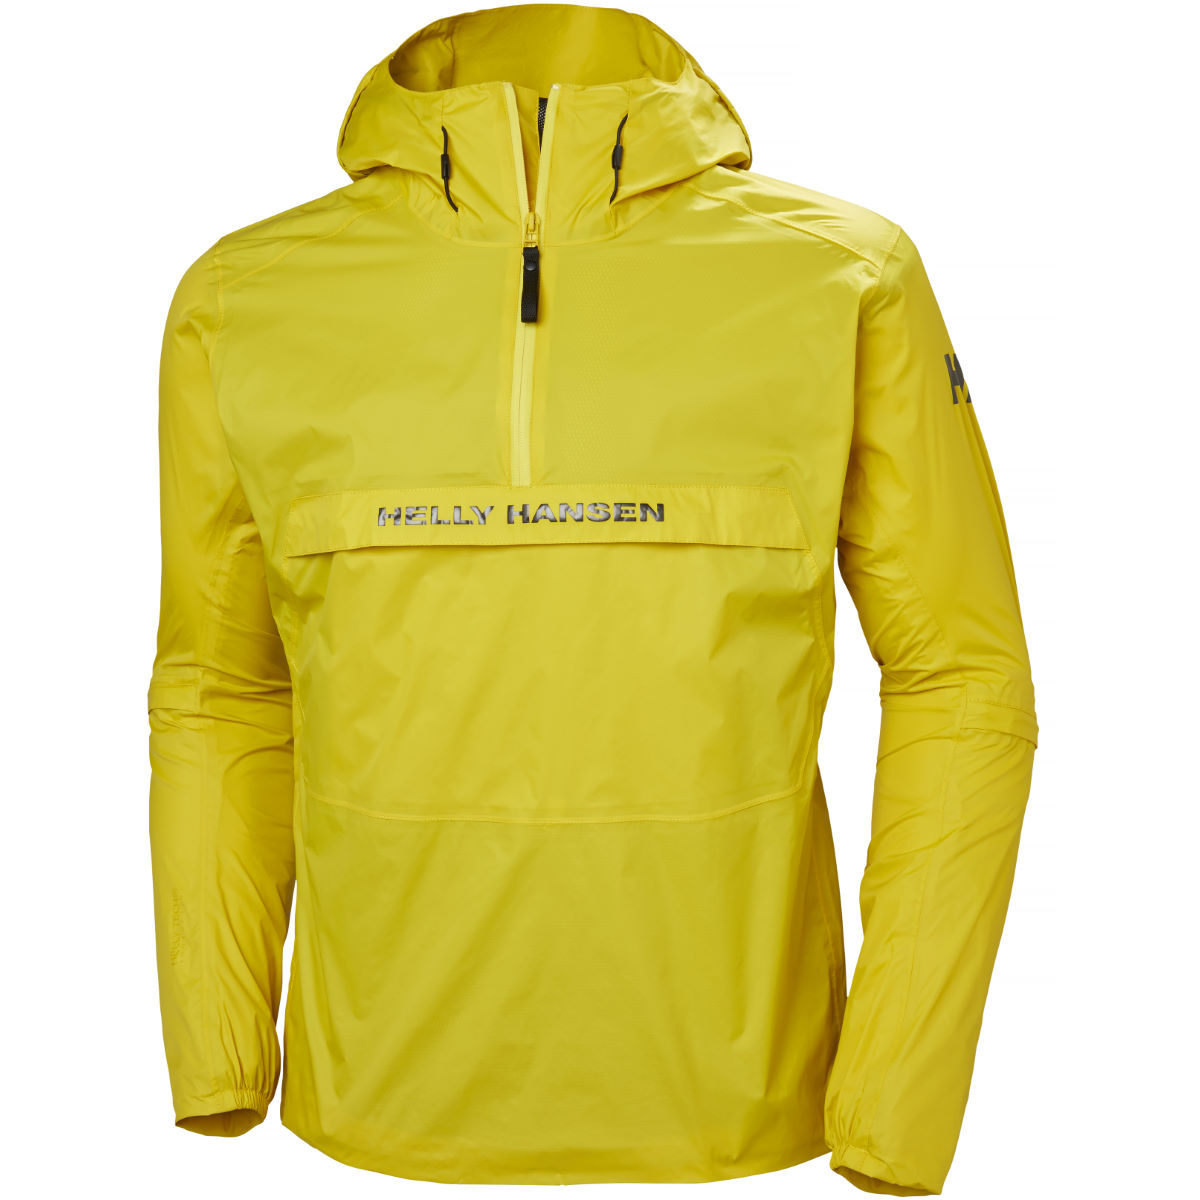 Helly Hansen Coasting Anorak - Impermeables - ciclismo